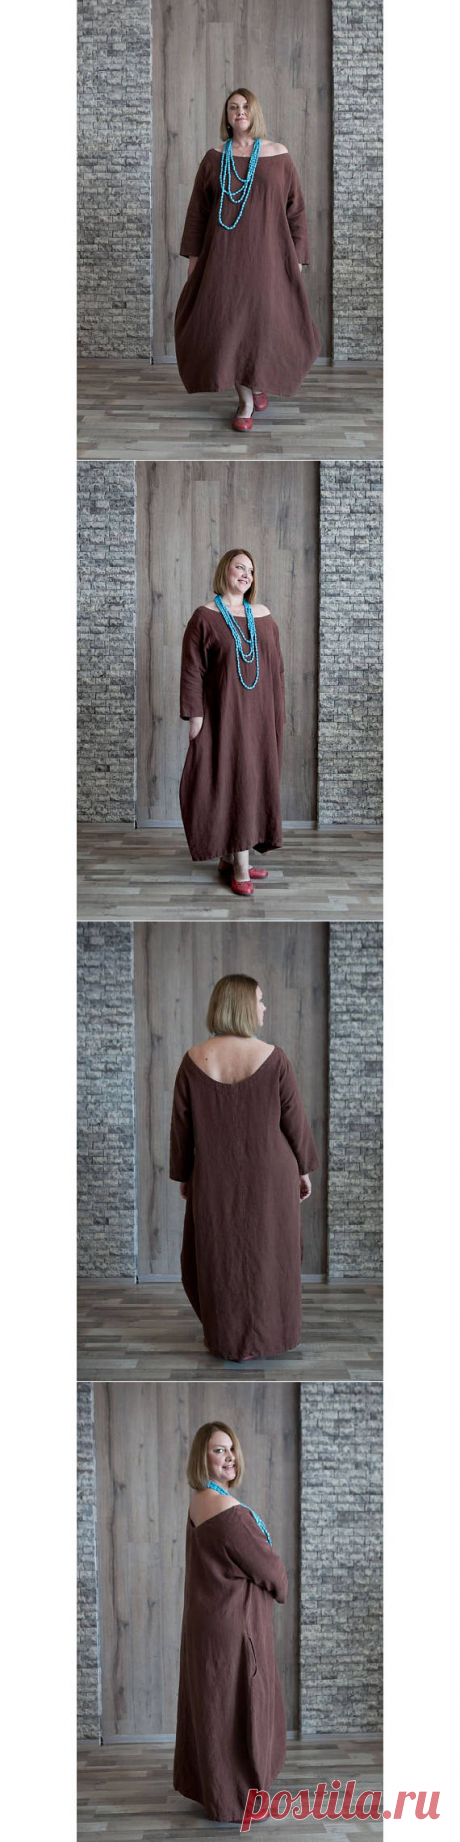 Linen dress with long sleeves Washed fall linen dress Maxi